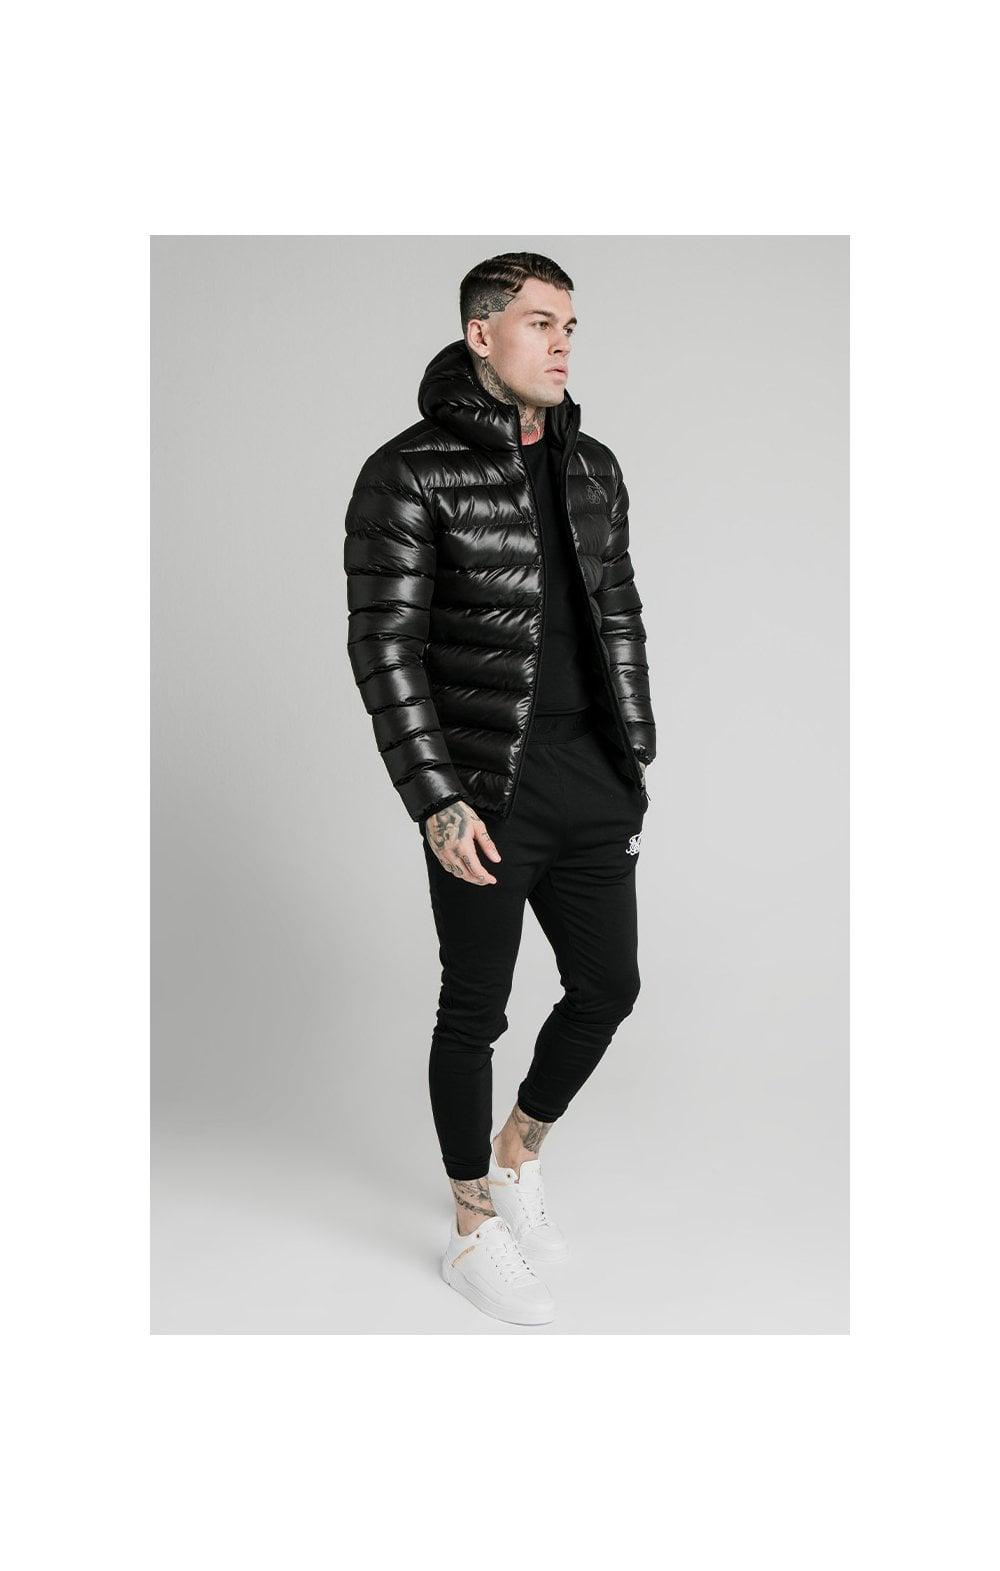 SikSilk Atmosphere Jacket - Black (4)